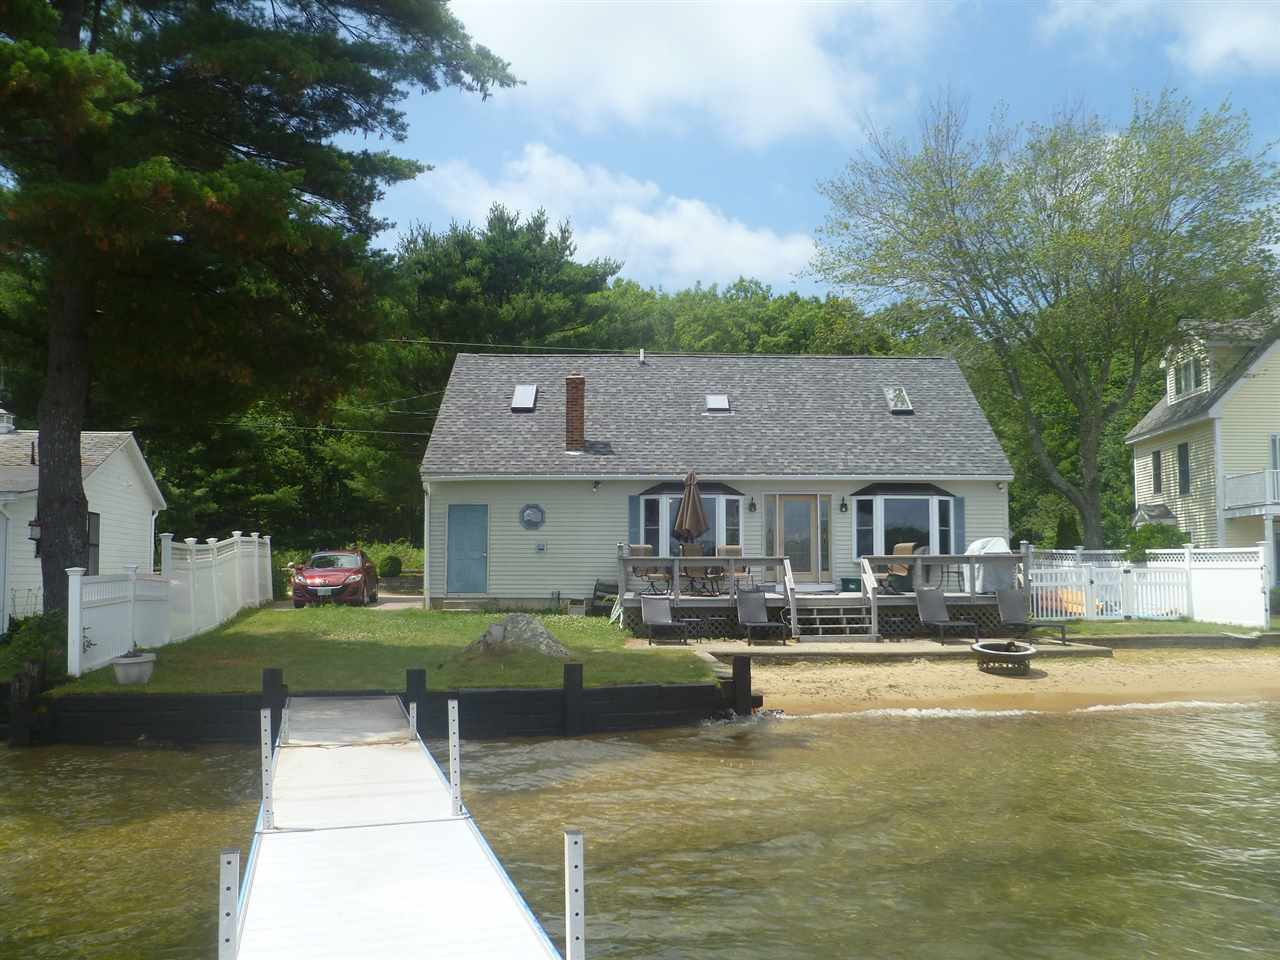 Laconia NH Home mls no. 4647467 with 72 ft. owned waterfront